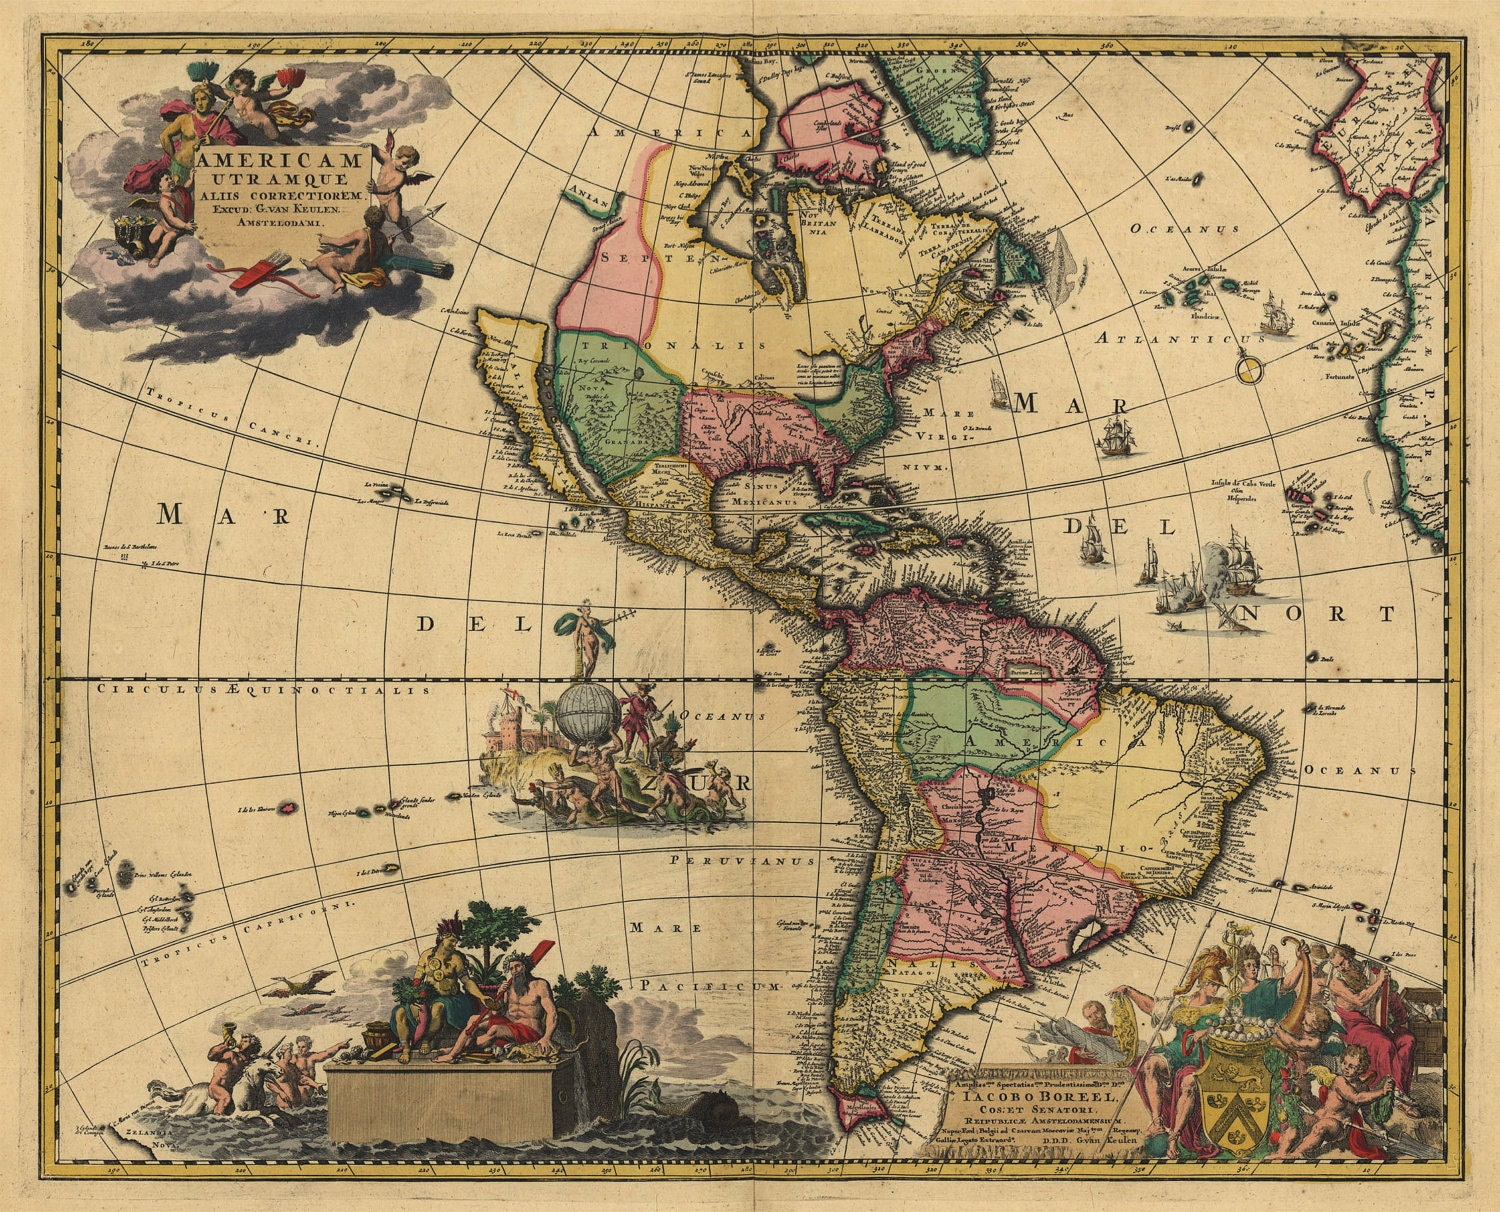 vintage framed maps with 1700s Map Of North South America on Vintage Clip Art New Years Bird Jewish Option furthermore Wine Map Of France further MABztlgZ 28 Thank You Card also Mapas Del Mundo Fuera De Lo  un likewise License Plates Of The Usa Our Colorful American History Design Turnpike.